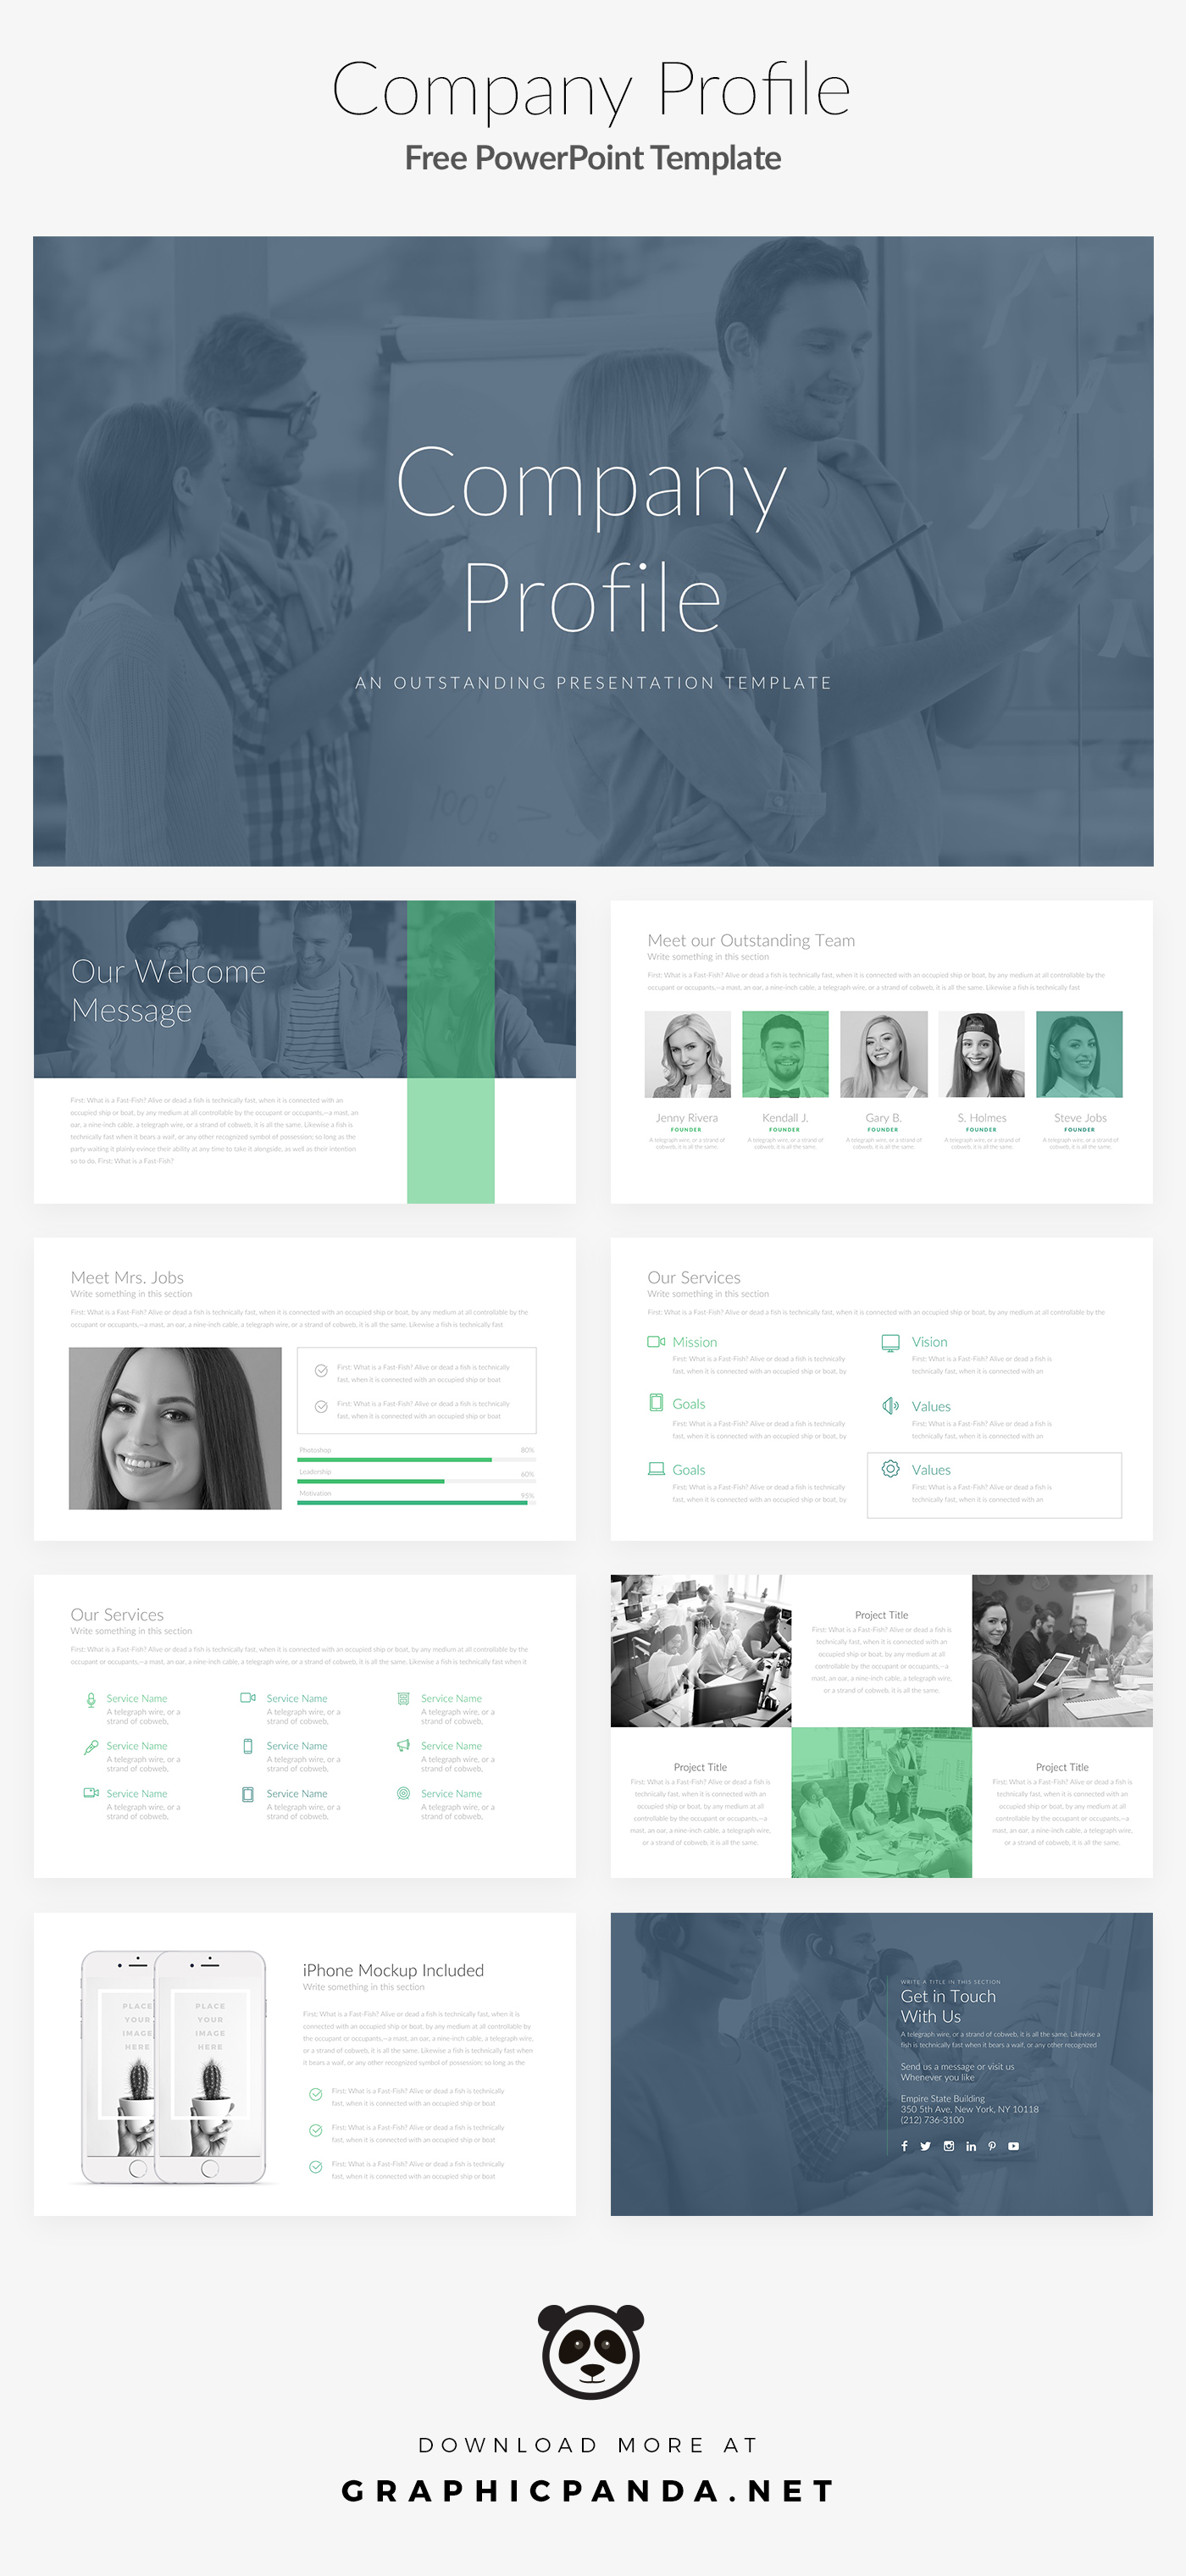 Free powerpoint template company profile pitch deck on behance if youre struggling with making a well designed presentation then this company profile free powerpoint template can help you achieve the creative and accmission